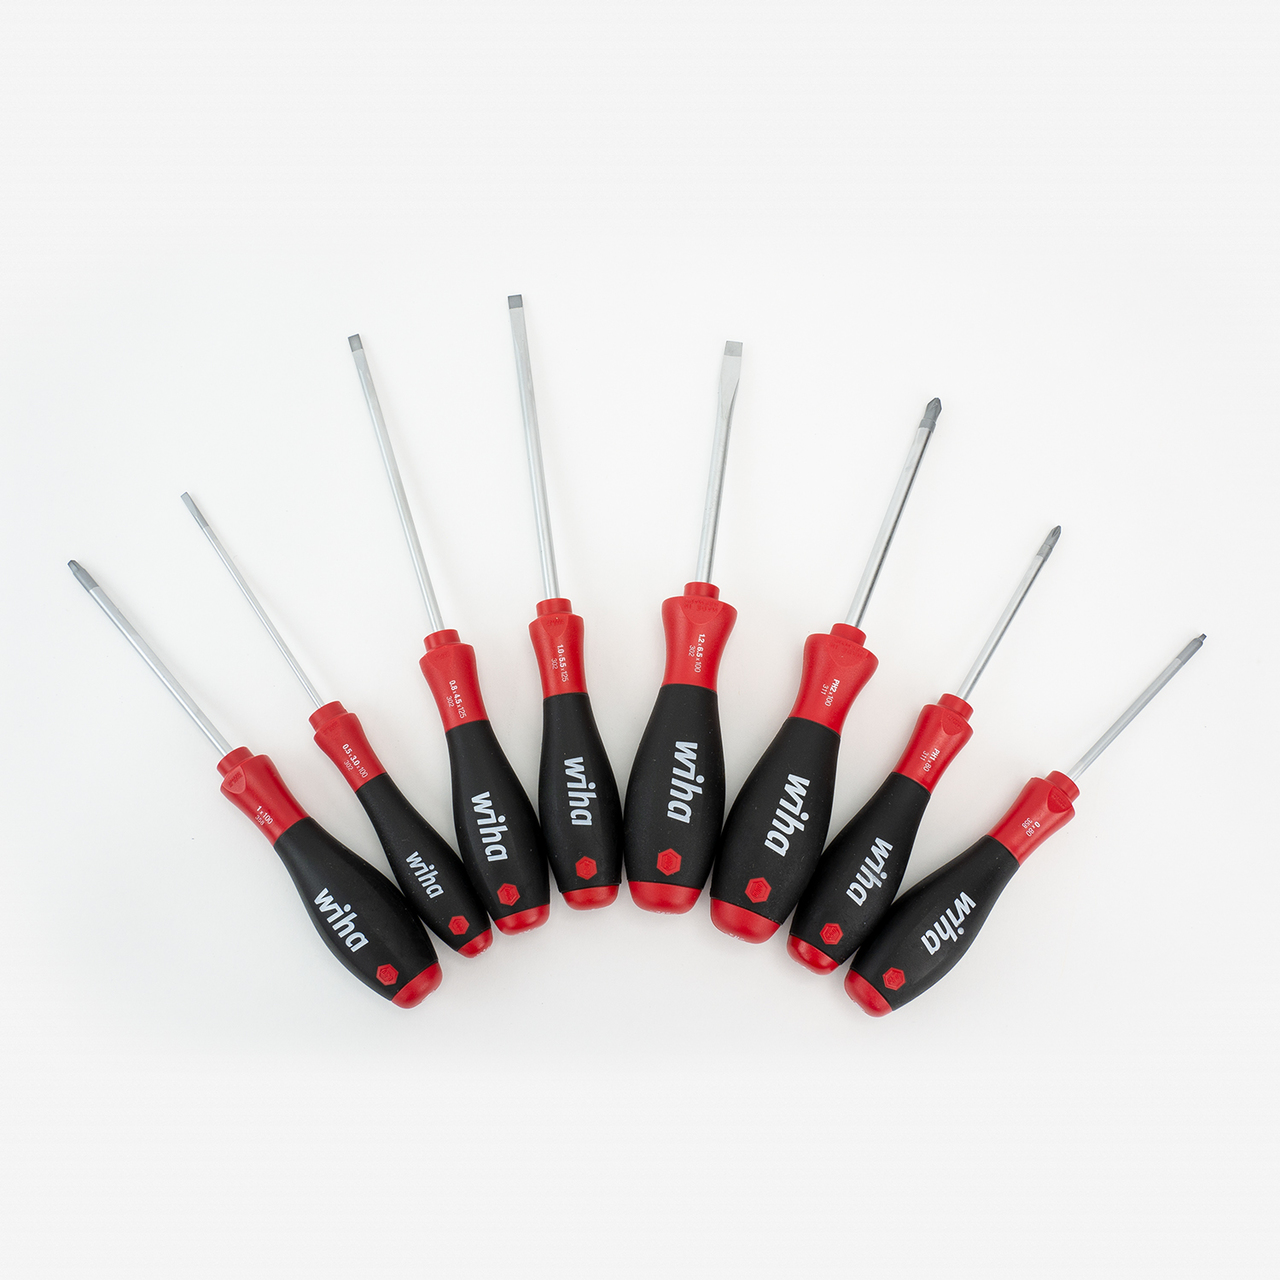 Wiha 30289 Slotted/Phillips/Square SoftFinish 8 Piece Screwdriver Set - KC Tool